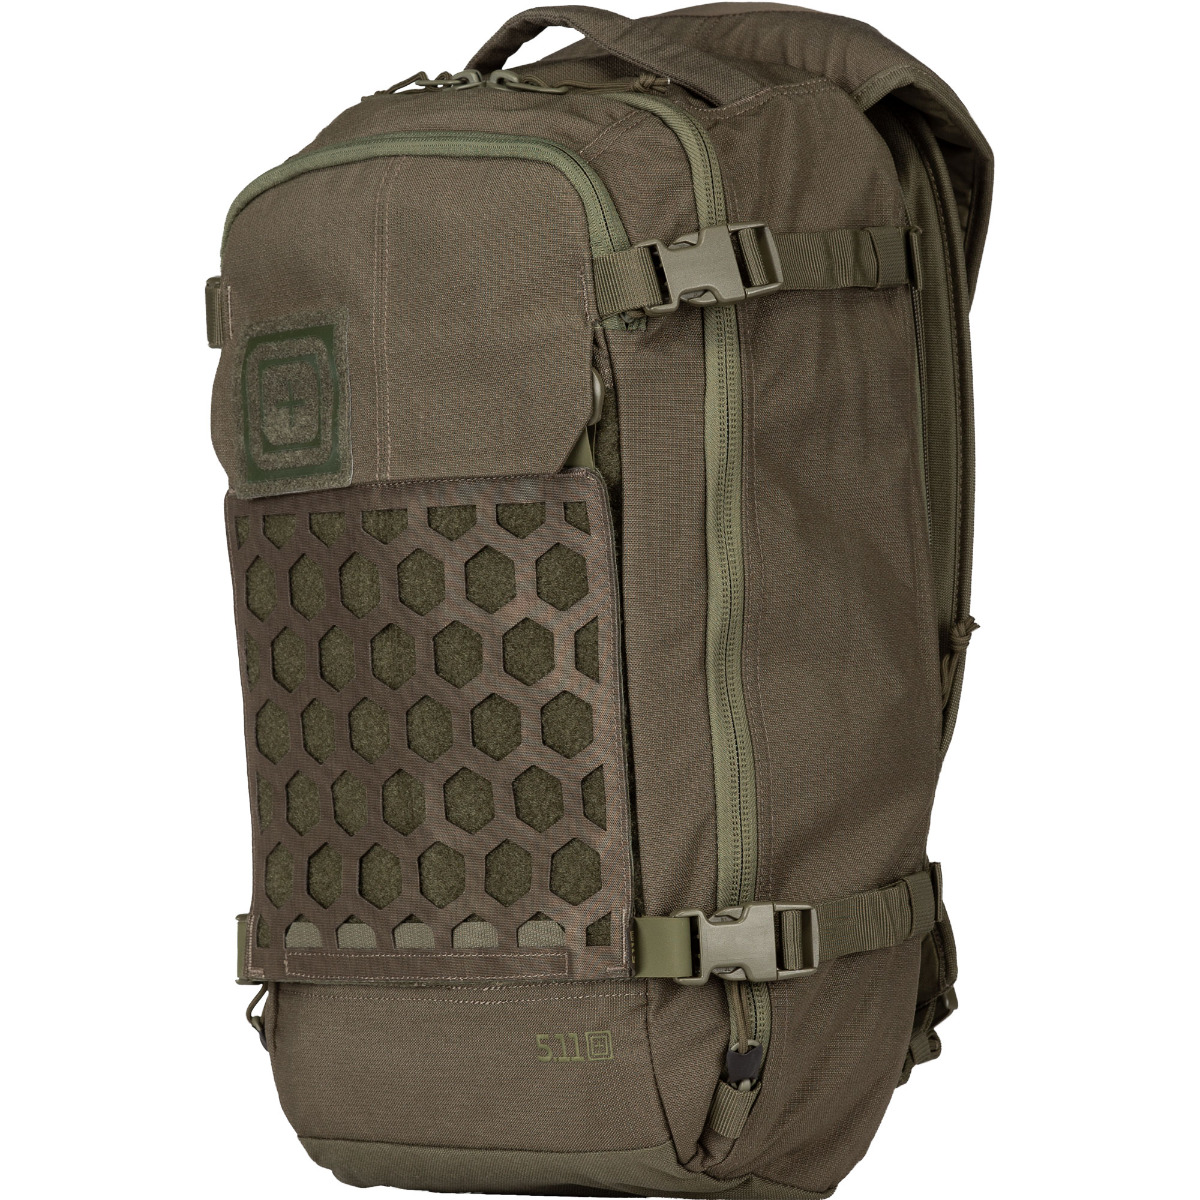 5.11 Tactical AMP12™ Backpack 25L (Green) thumbnail